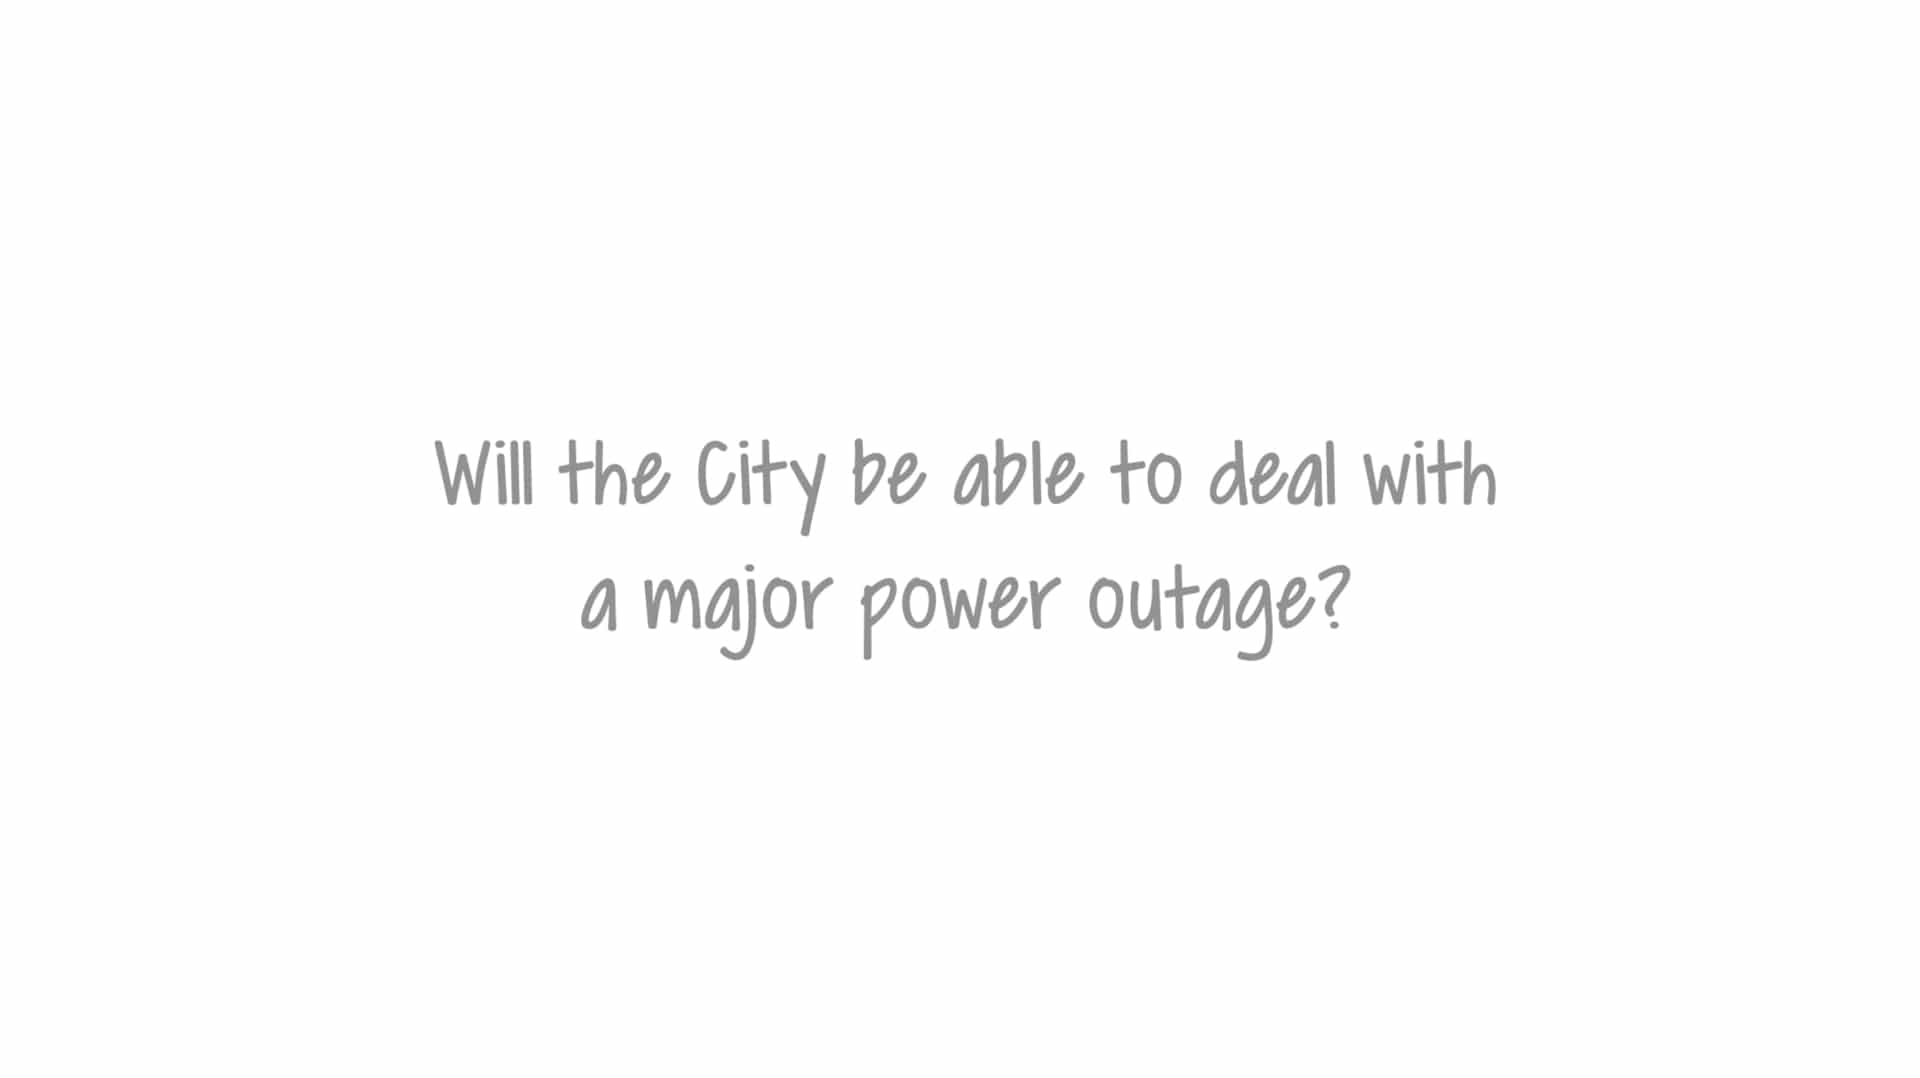 Will the city be able to deal with a major power outage